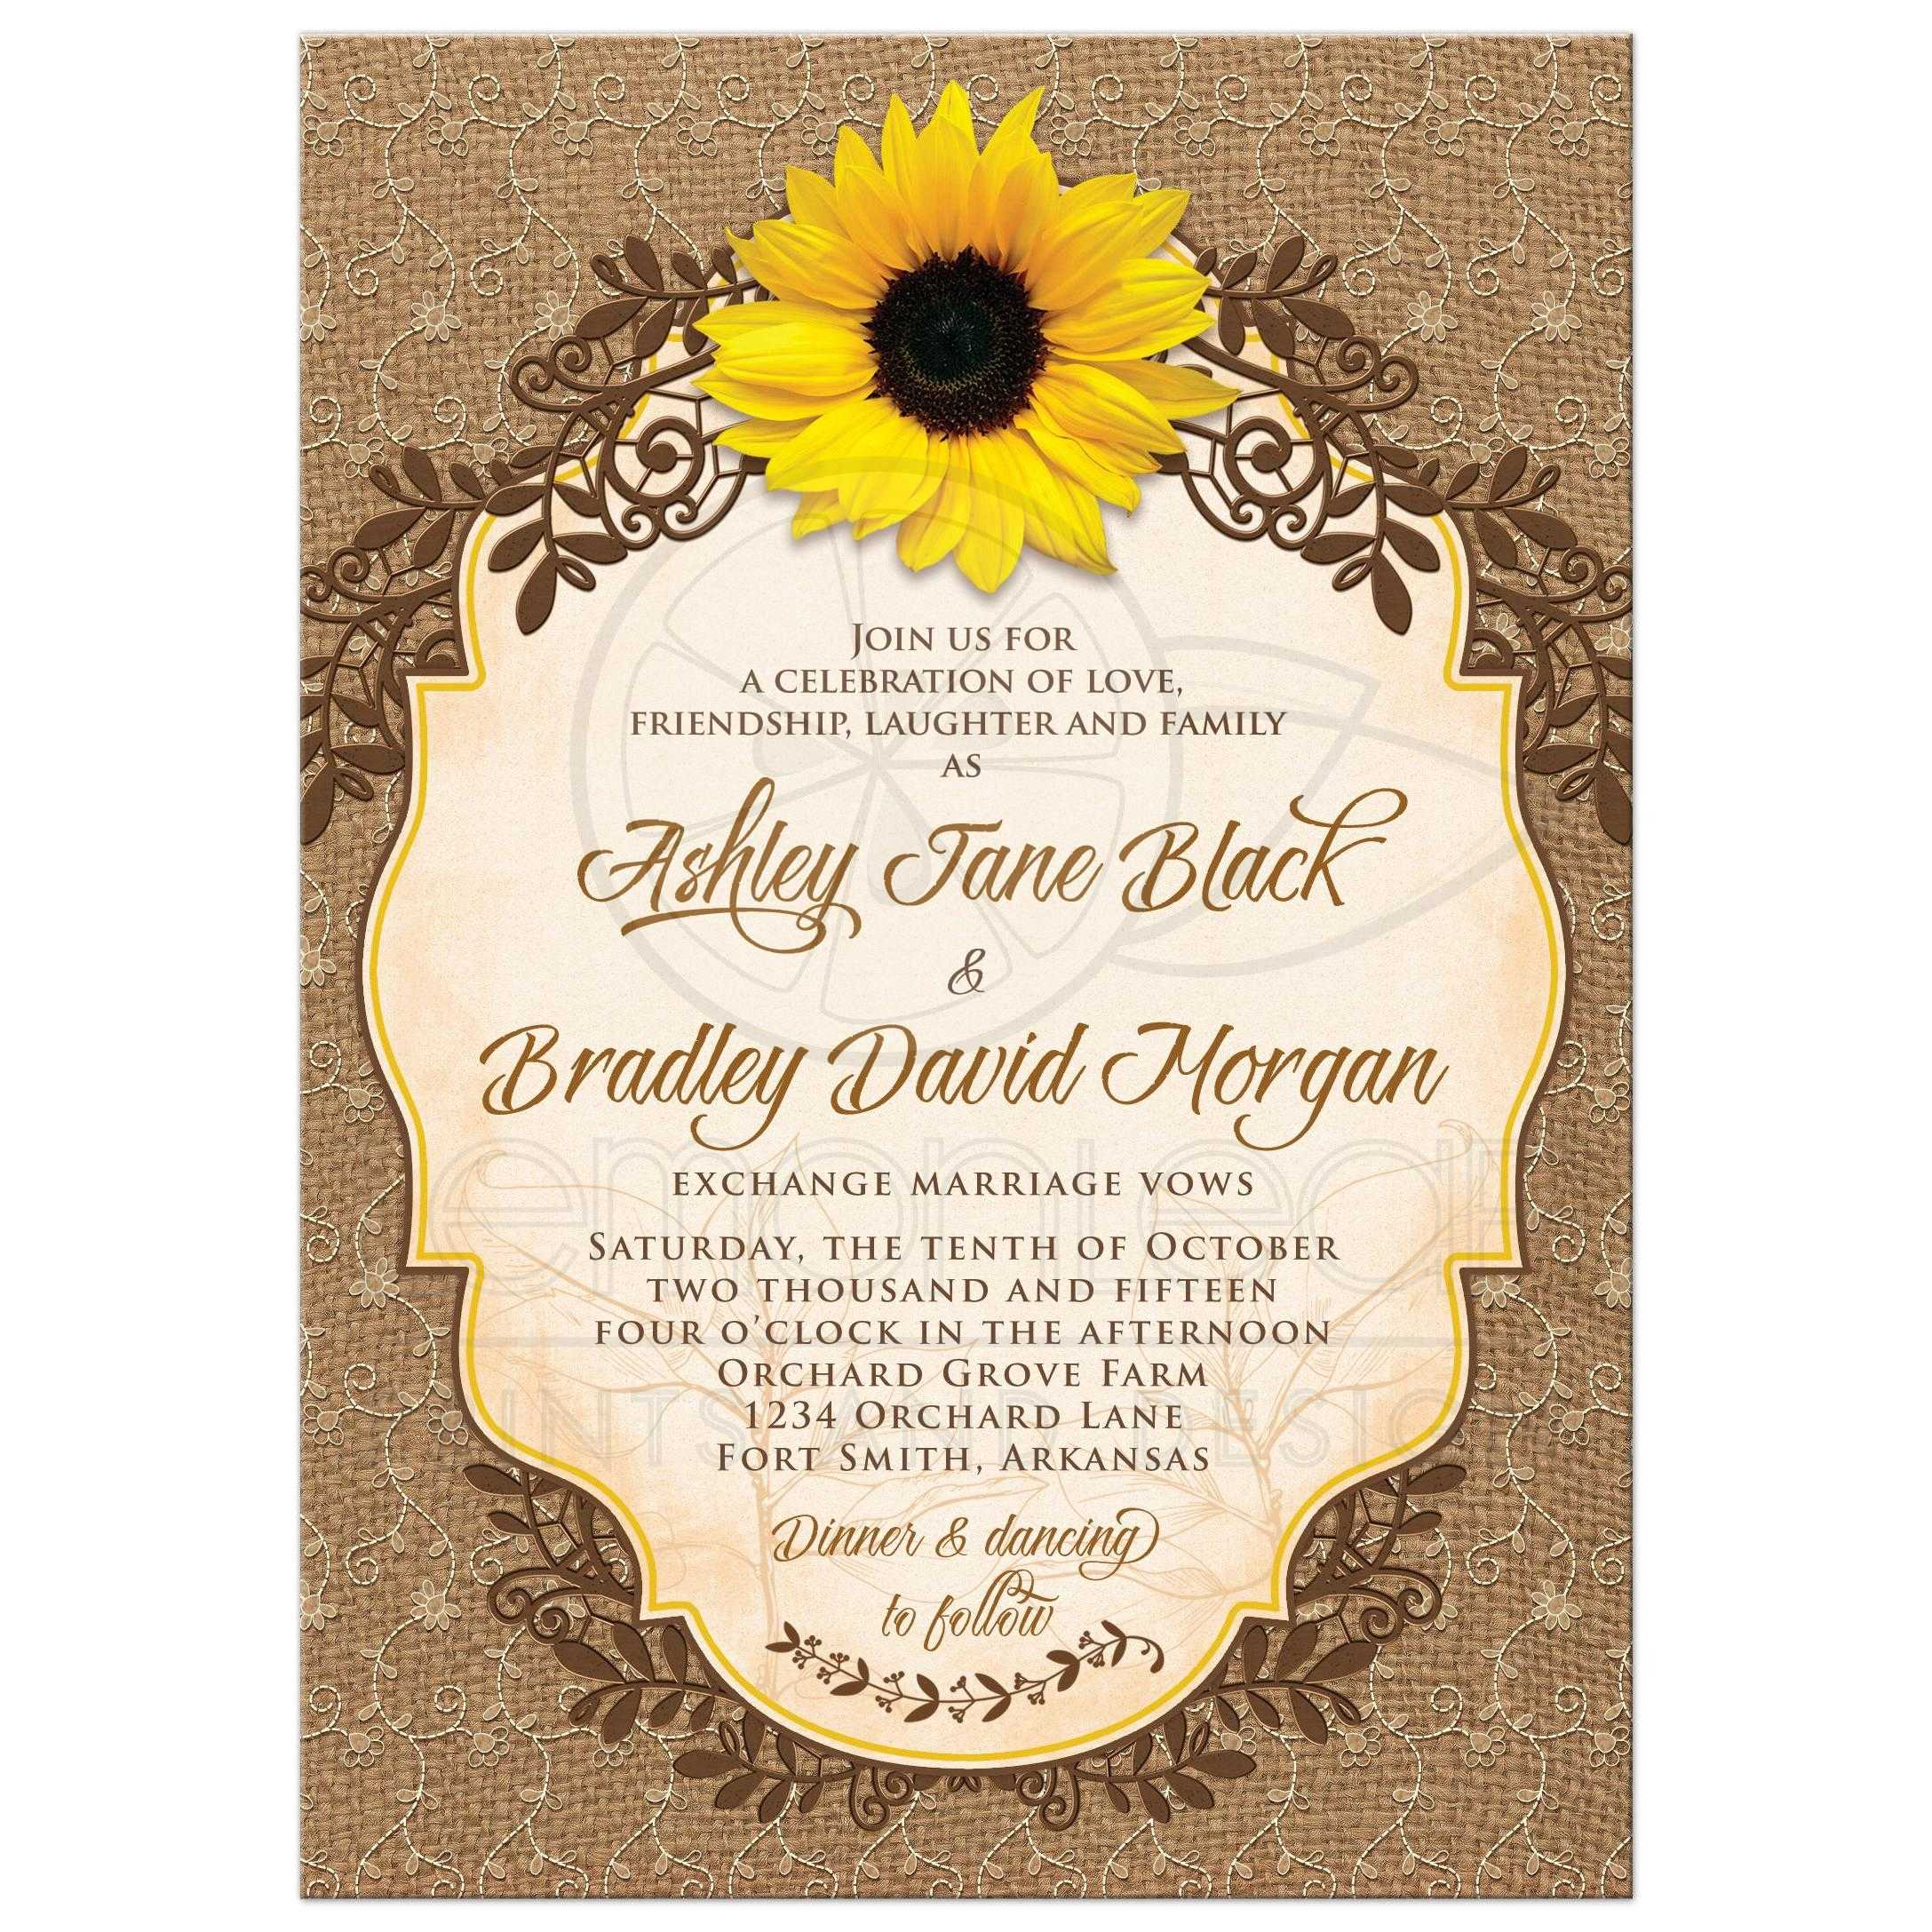 Sunflower invitations jcmanagement sunflower invitations filmwisefo